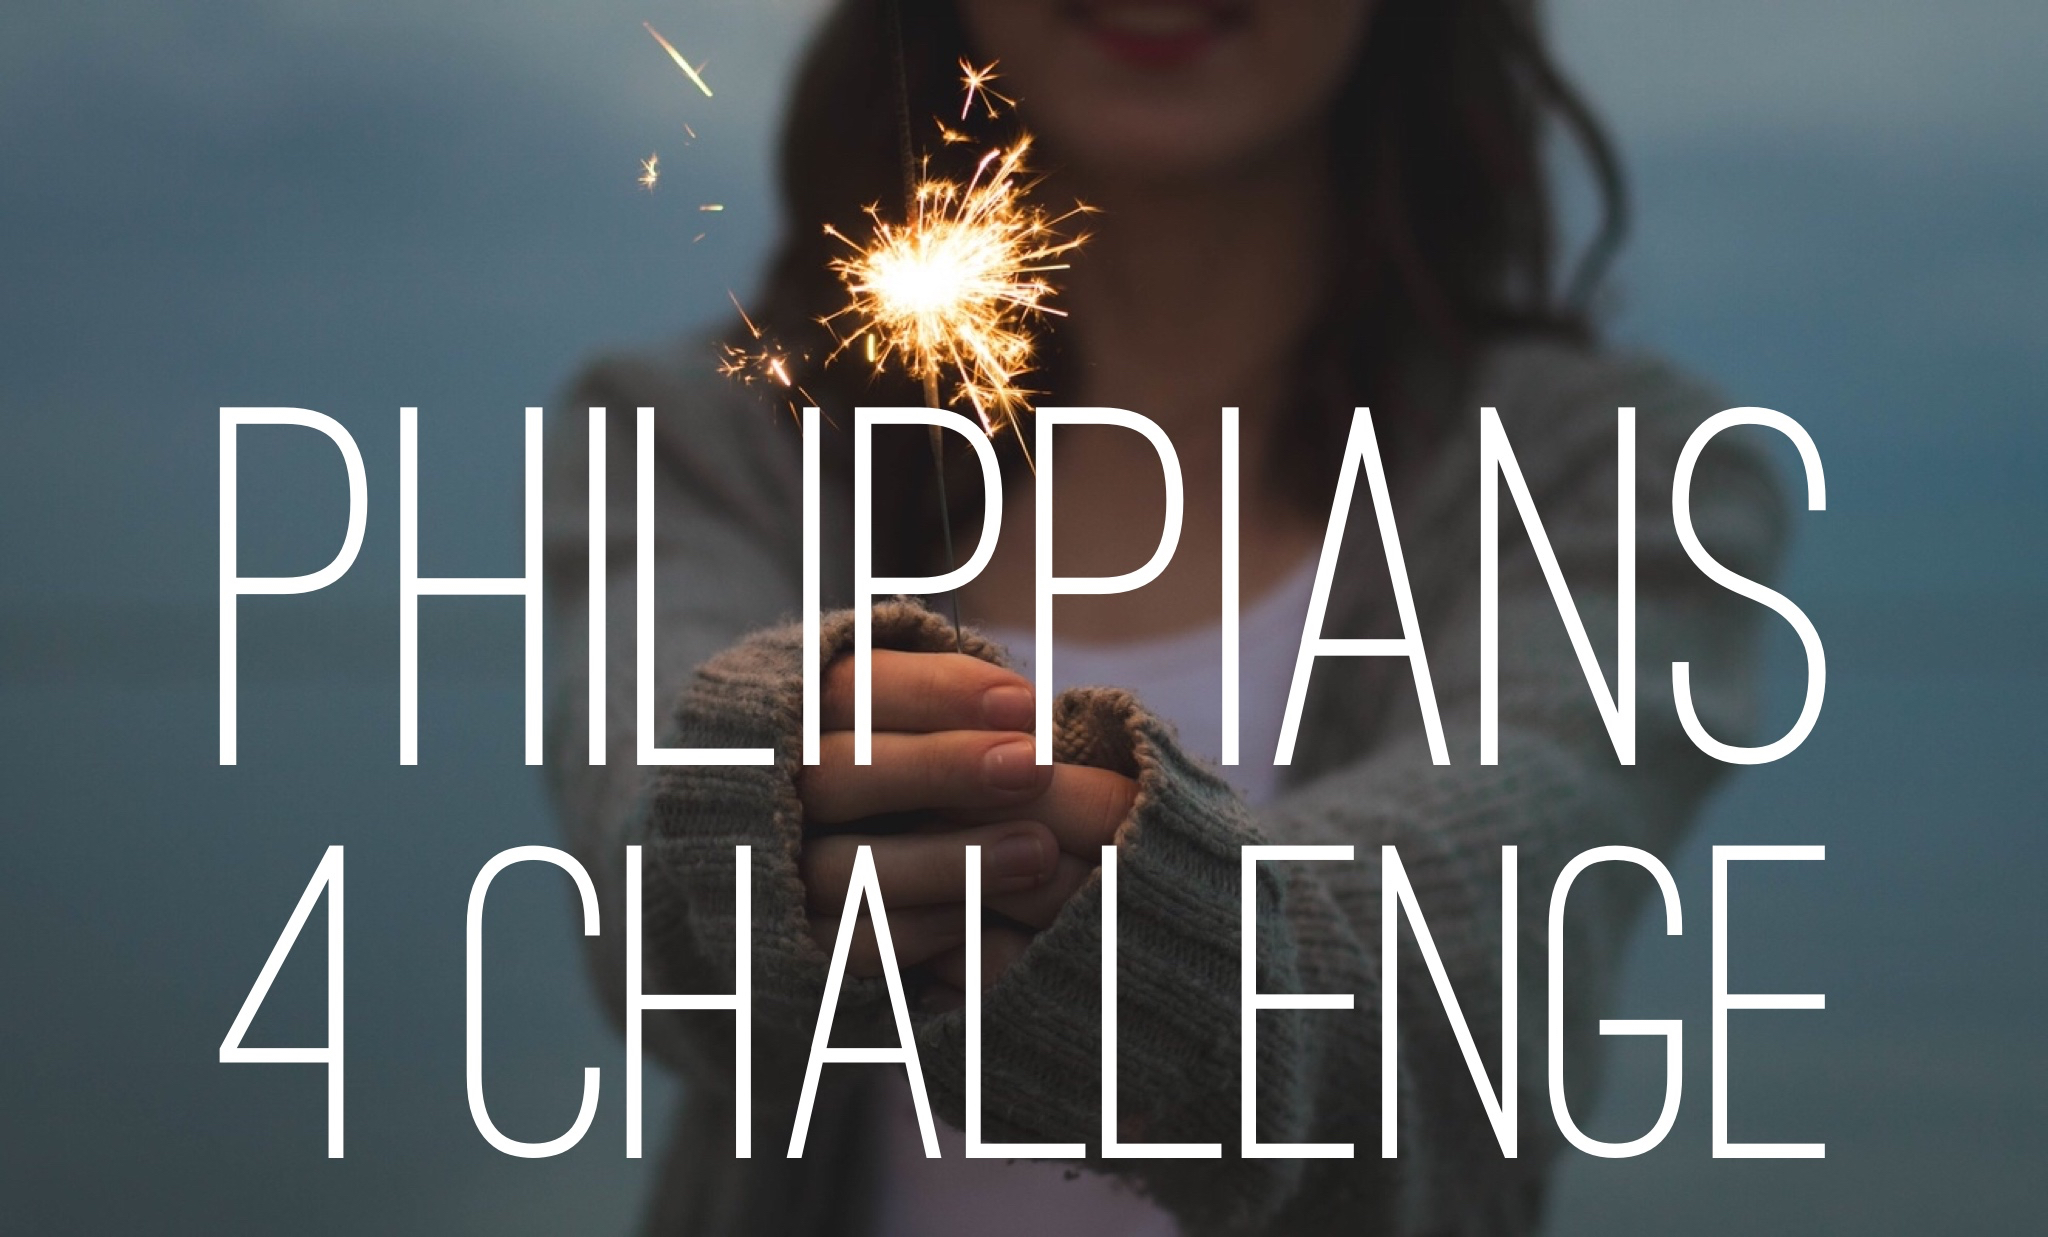 Take the Challenge! - The Philippians 4 Challenge is as simple as it is audacious. In the first century, the Apostle Paul commanded the early church to live out four habits to attain three incredible promises: the peace of God that will guard you, the presence of God that will surround you, and the contentment of God that will free you. The Philippians 4 Challenge is simply taking God at His Word, living out what Philippians 4 commands us to do, and seeing if God's promises are really true. Fill out the survey below to get a baseline on where you are now, read the devotionals for 21 days and follow through with the action steps, then see how much progress you've made after 21 days. Answer each question below on a scale of 1 (doesn't apply to you) to 7 (perfectly describes you). Get ready for a life-changing journey!